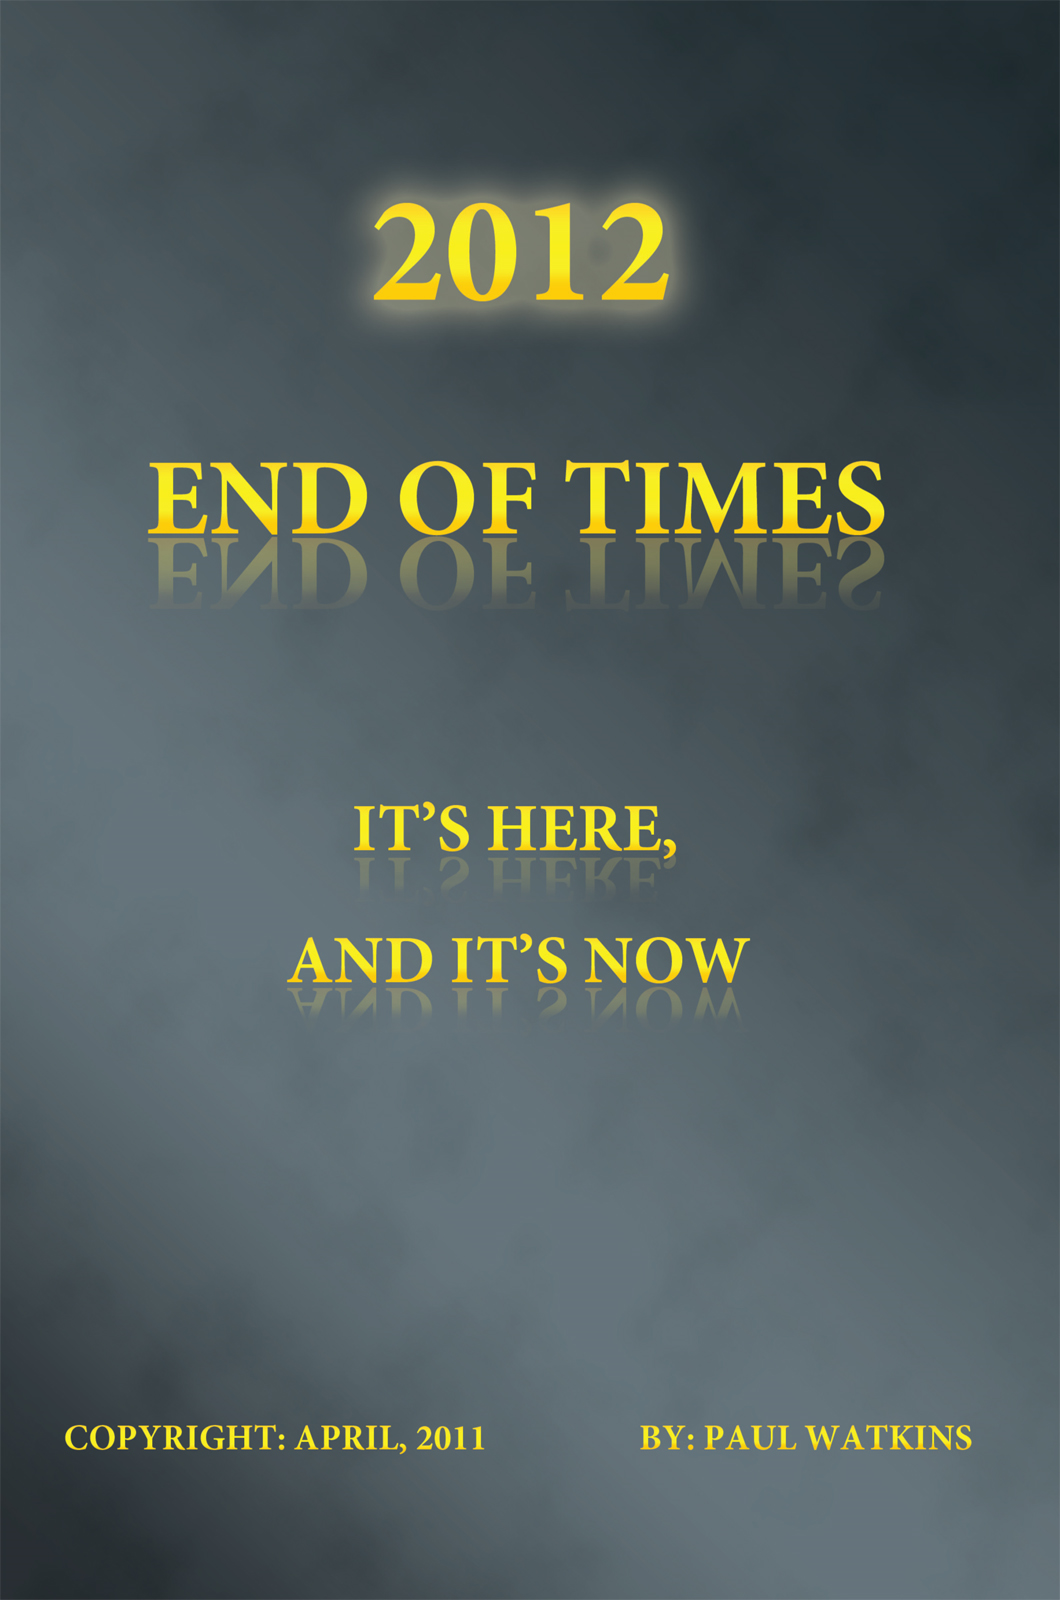 """2012"" End of times, it's here, and it's now"